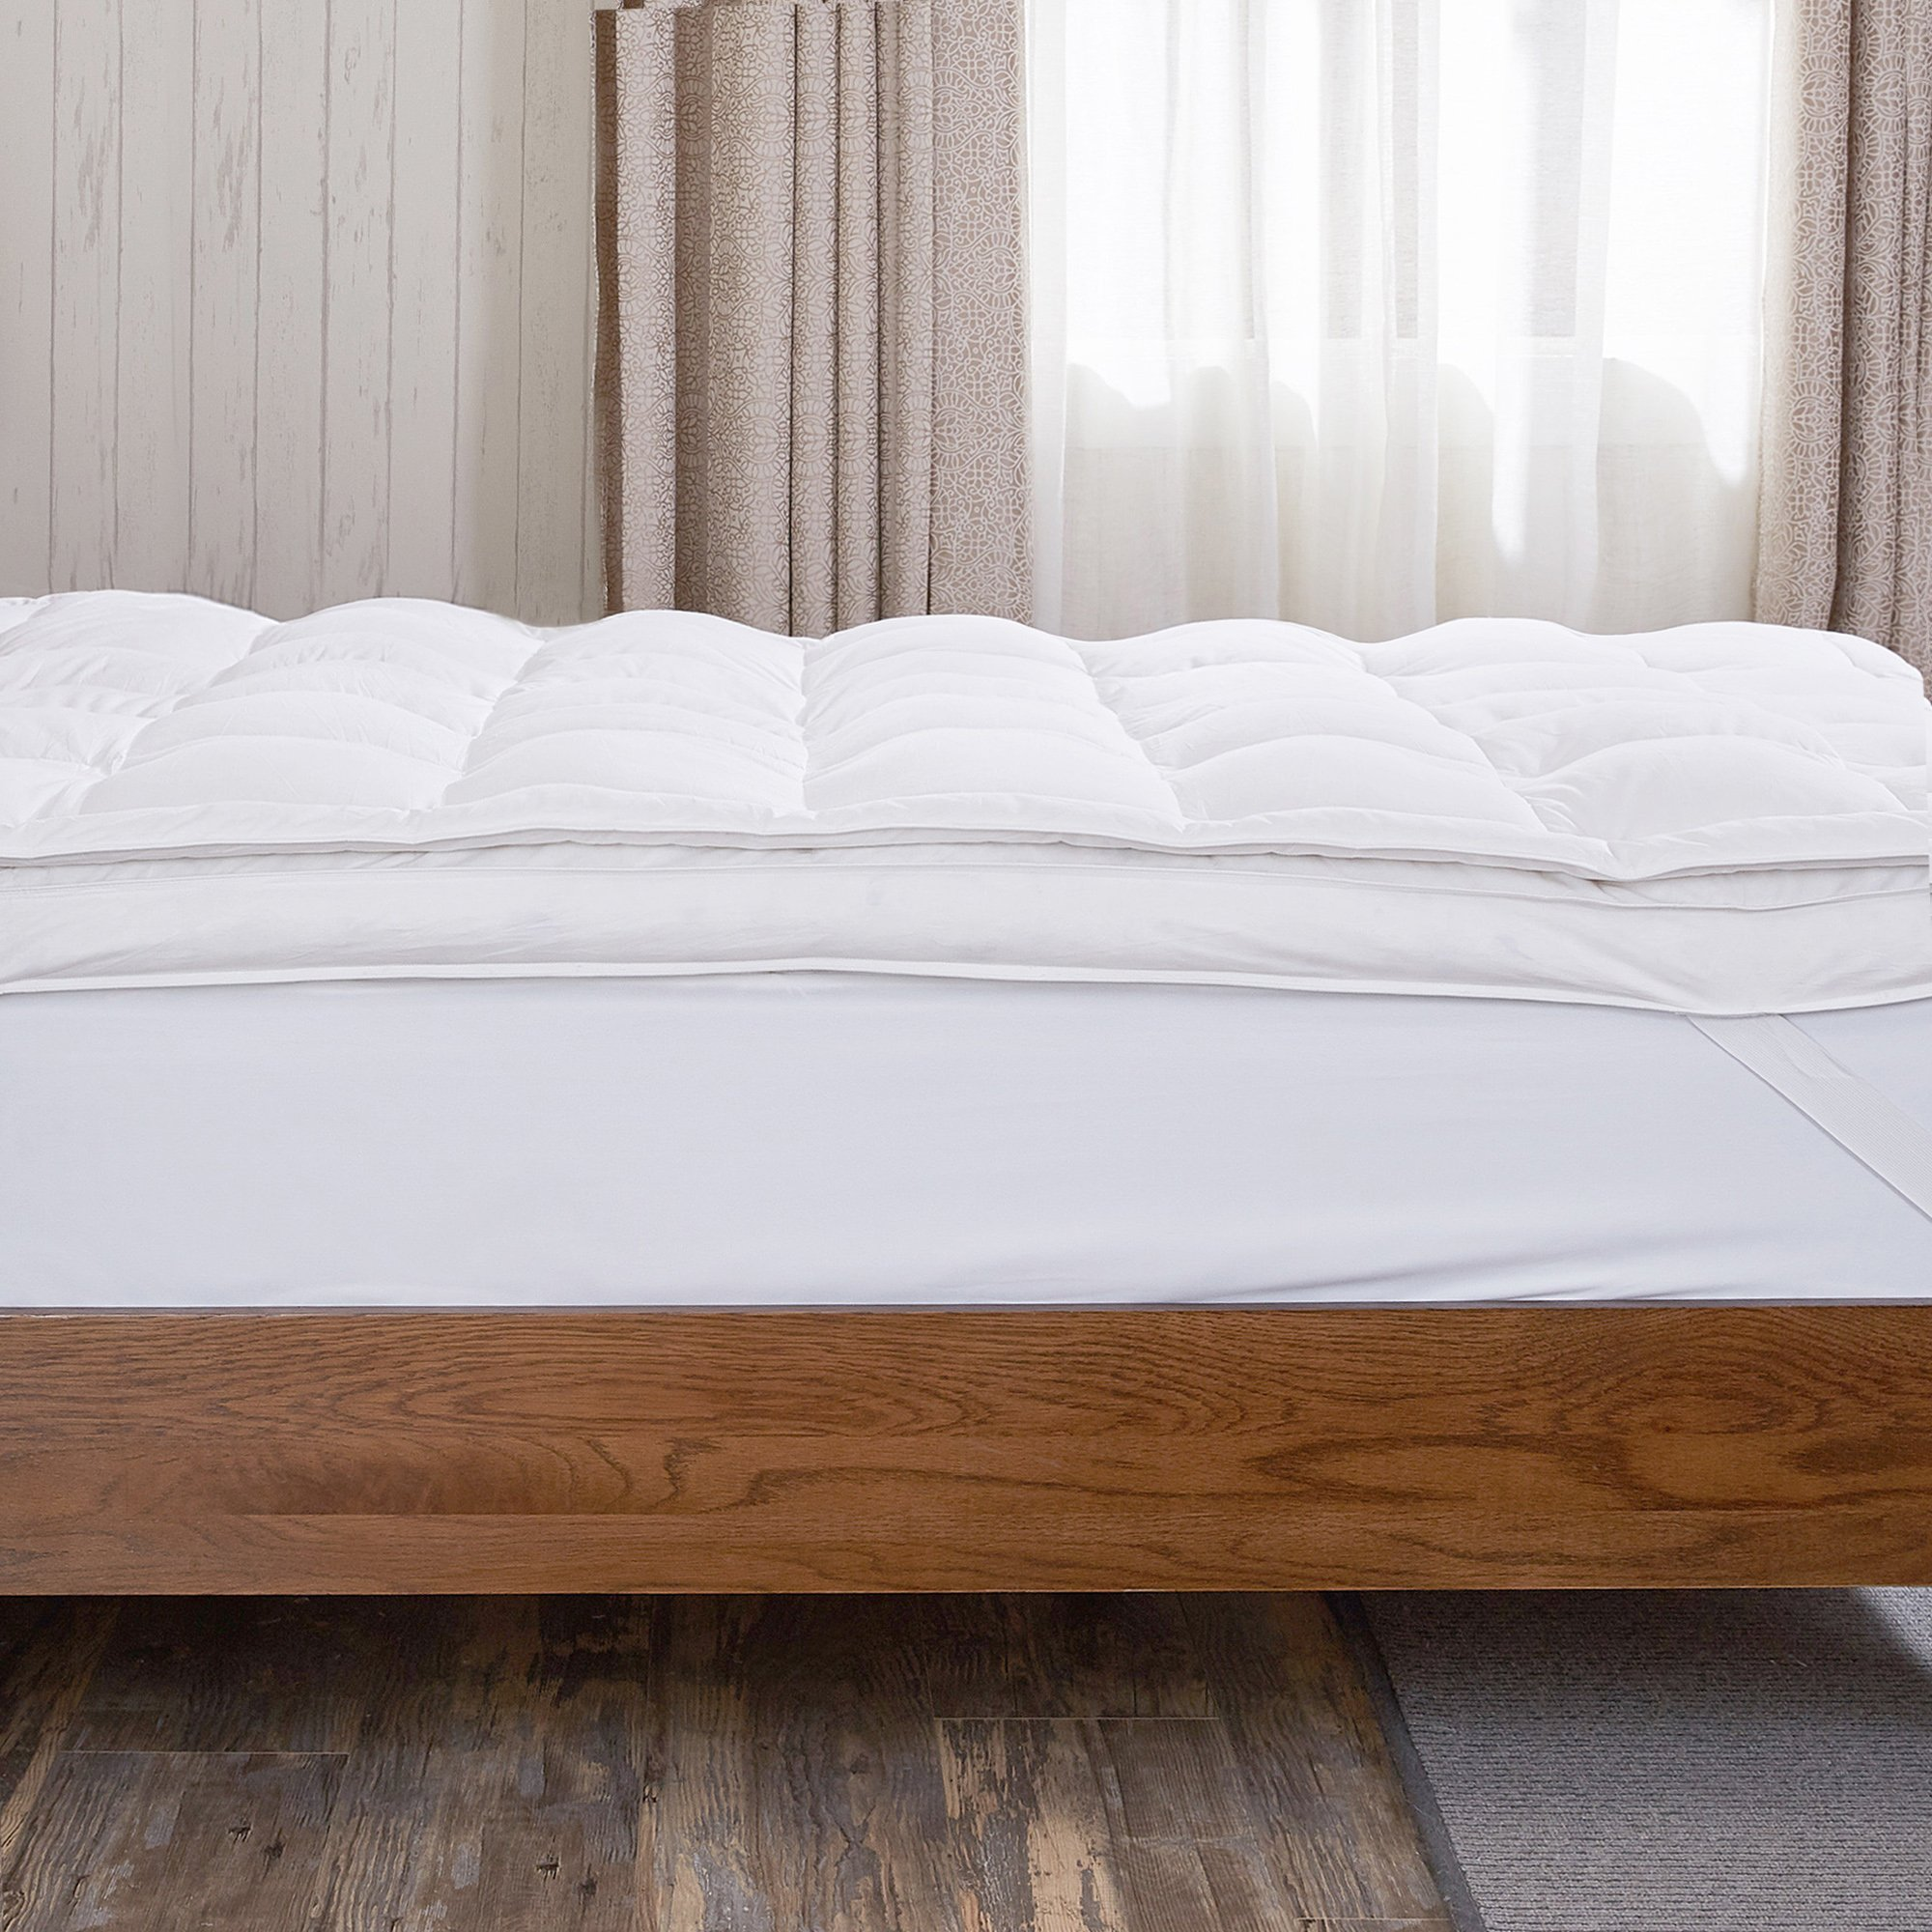 puredown Premium Natural White Goose Down Feather Overfilled Bed Topper 100% Cotton Fabric Mattress Pad Queen Down by puredown (Image #2)